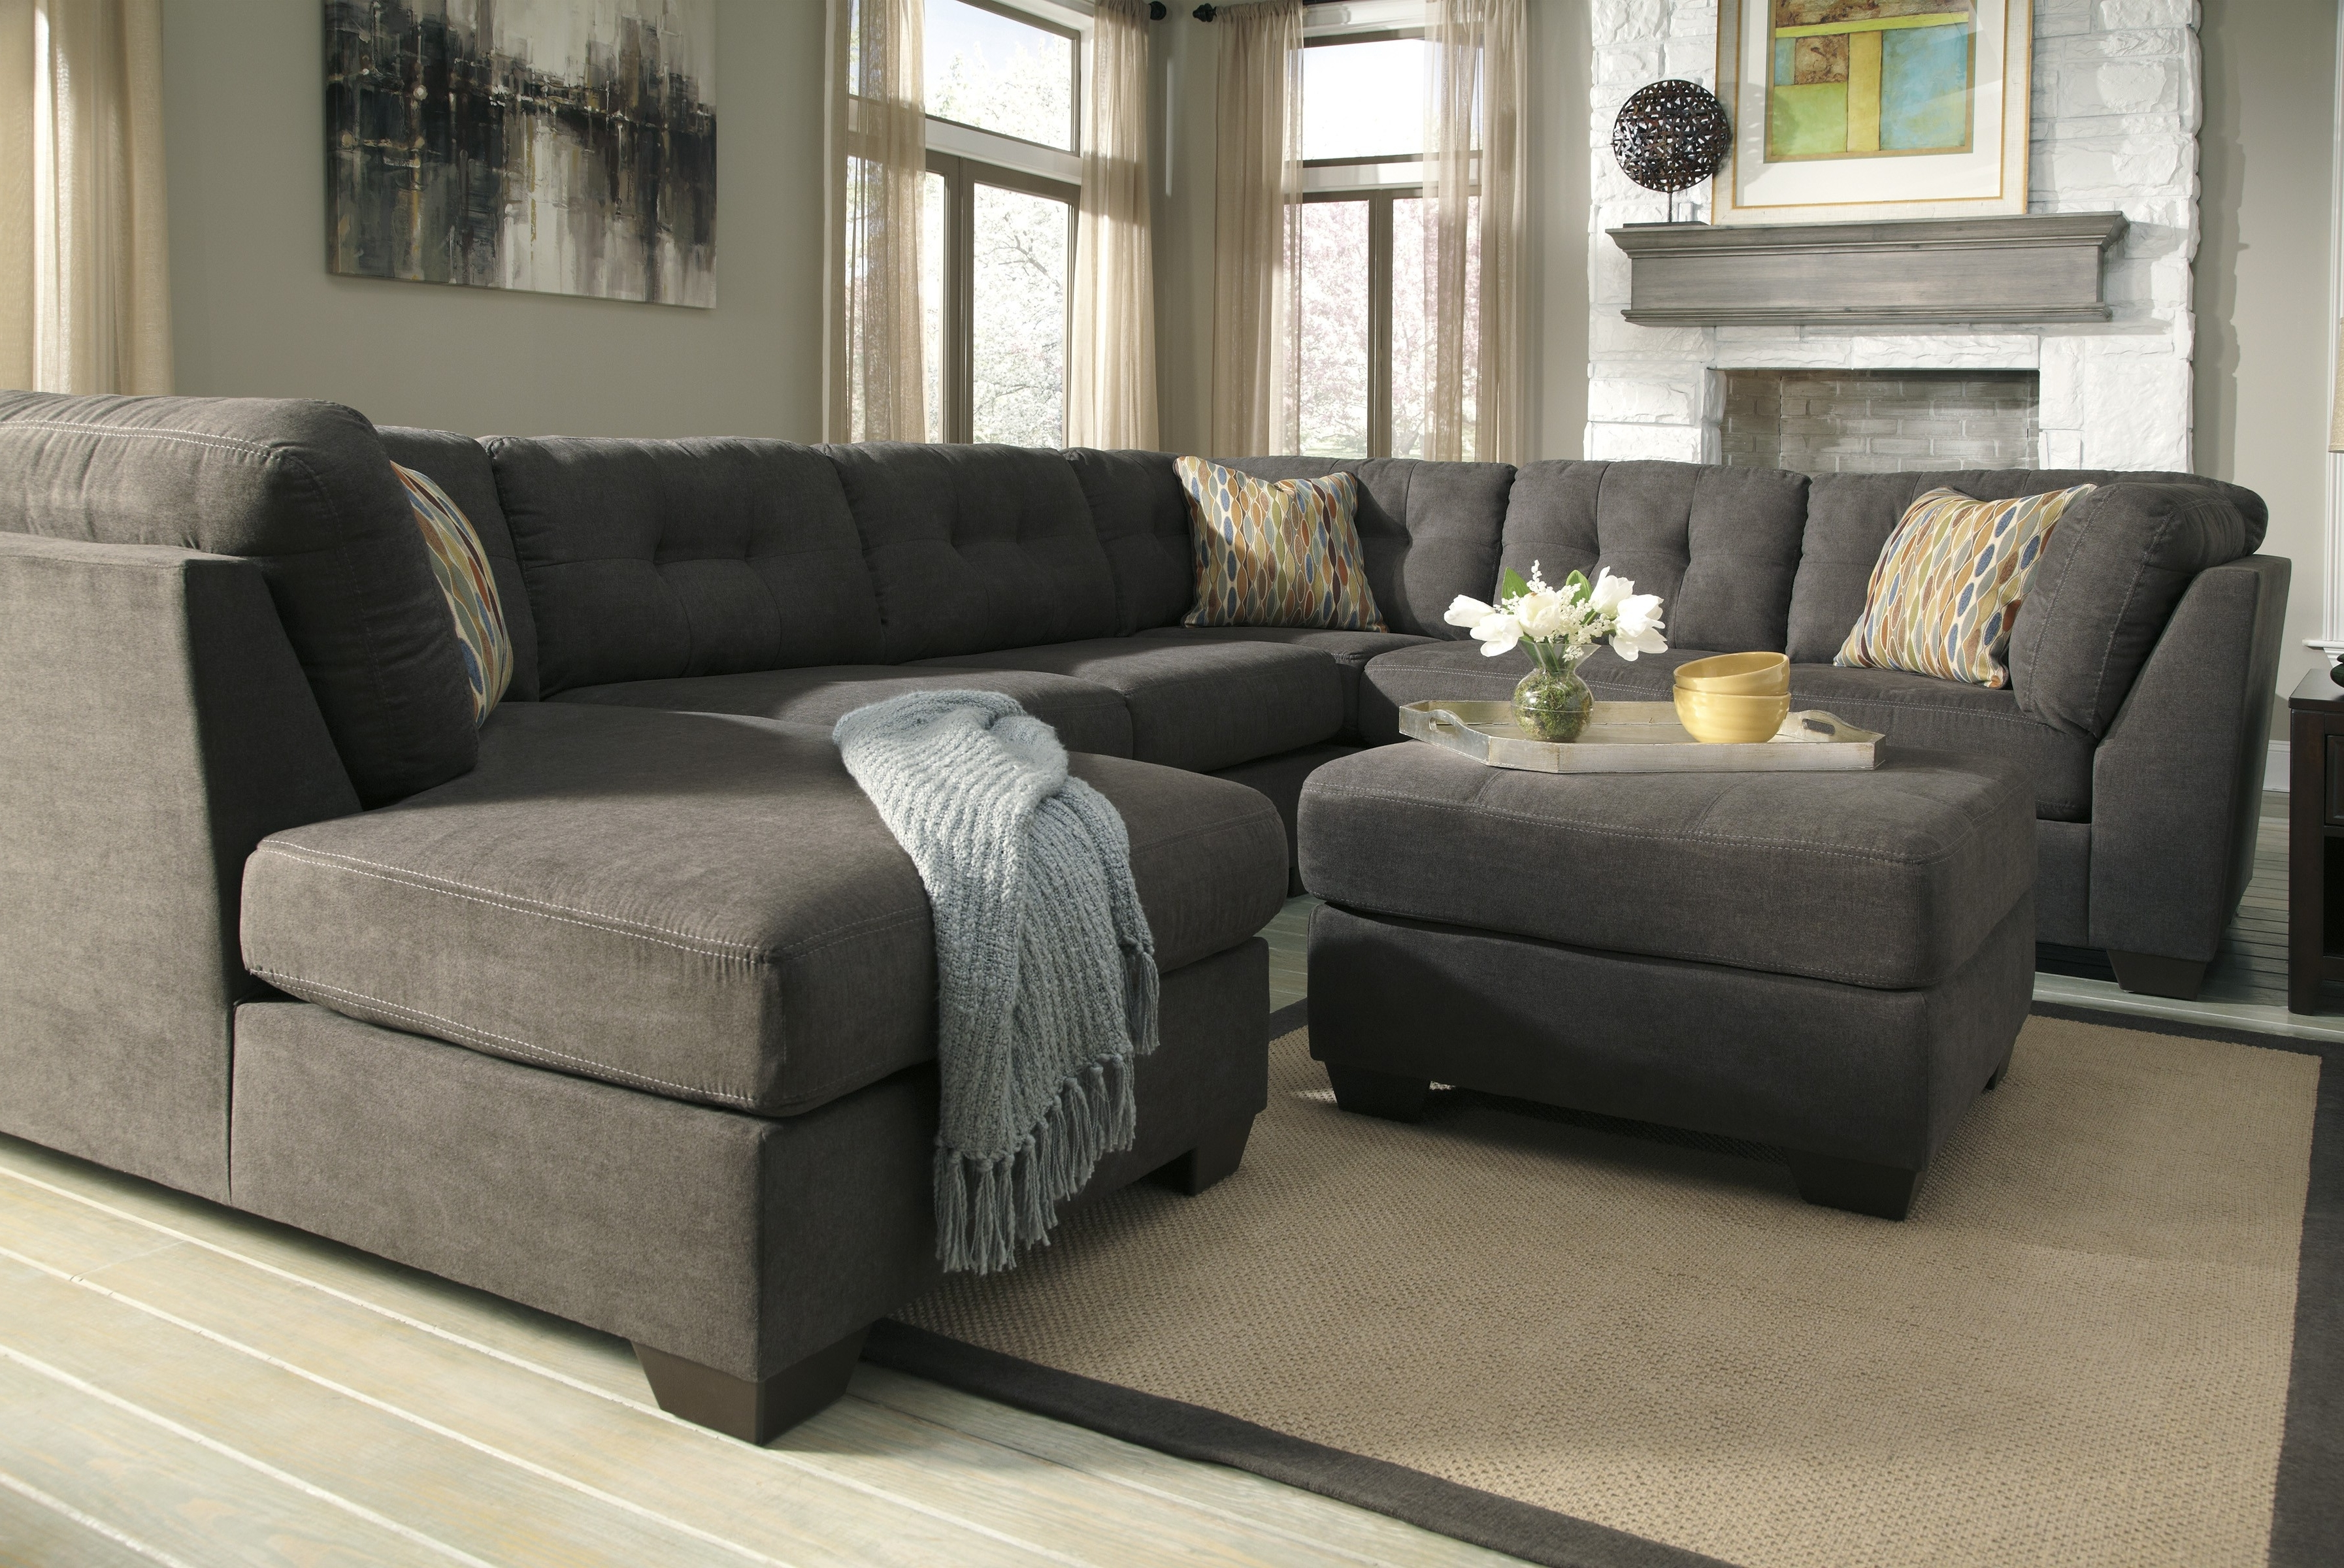 Most Recently Released Tufted Sectionals With Chaise In Decorations Inspiration Lovable Grey Velvet U Shaped Tufted (View 12 of 15)